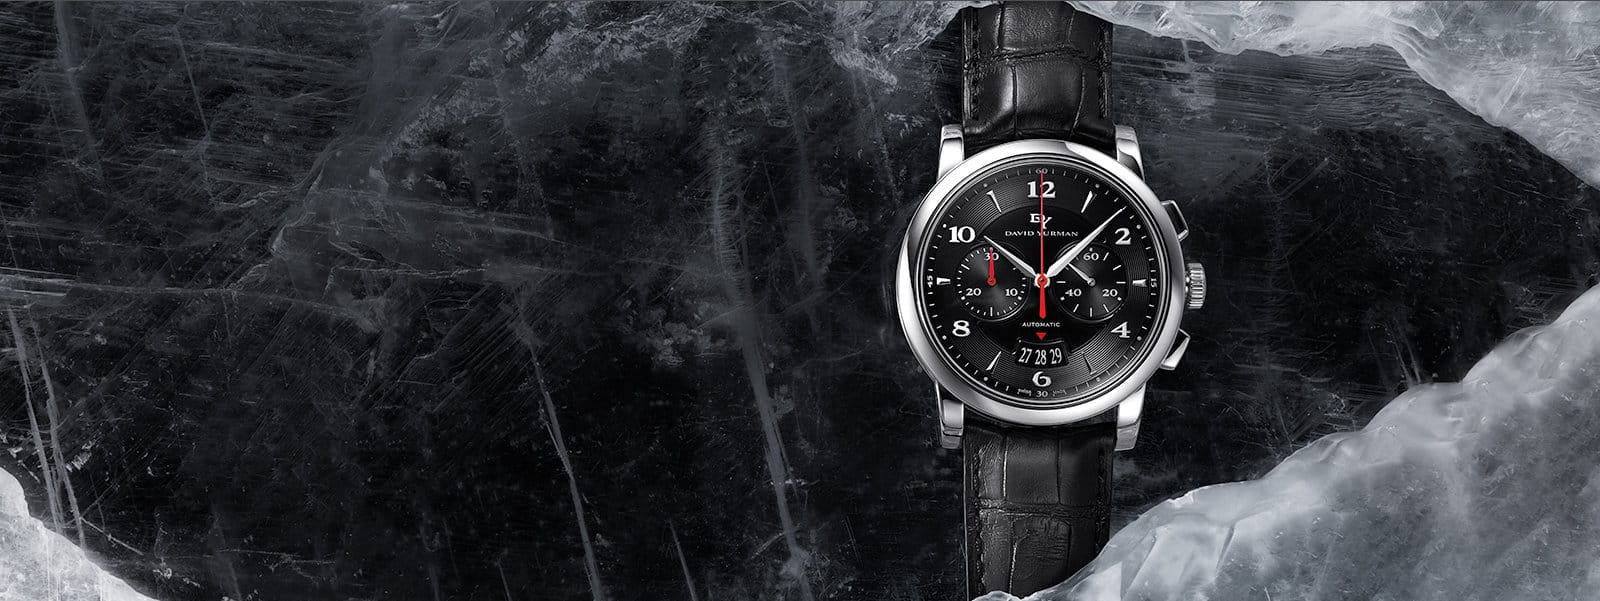 A Classic 43.5mm watch in stainless steel with a black embossed leather strap and black watch face, wrapped around a sheet of dark, scratched ice.